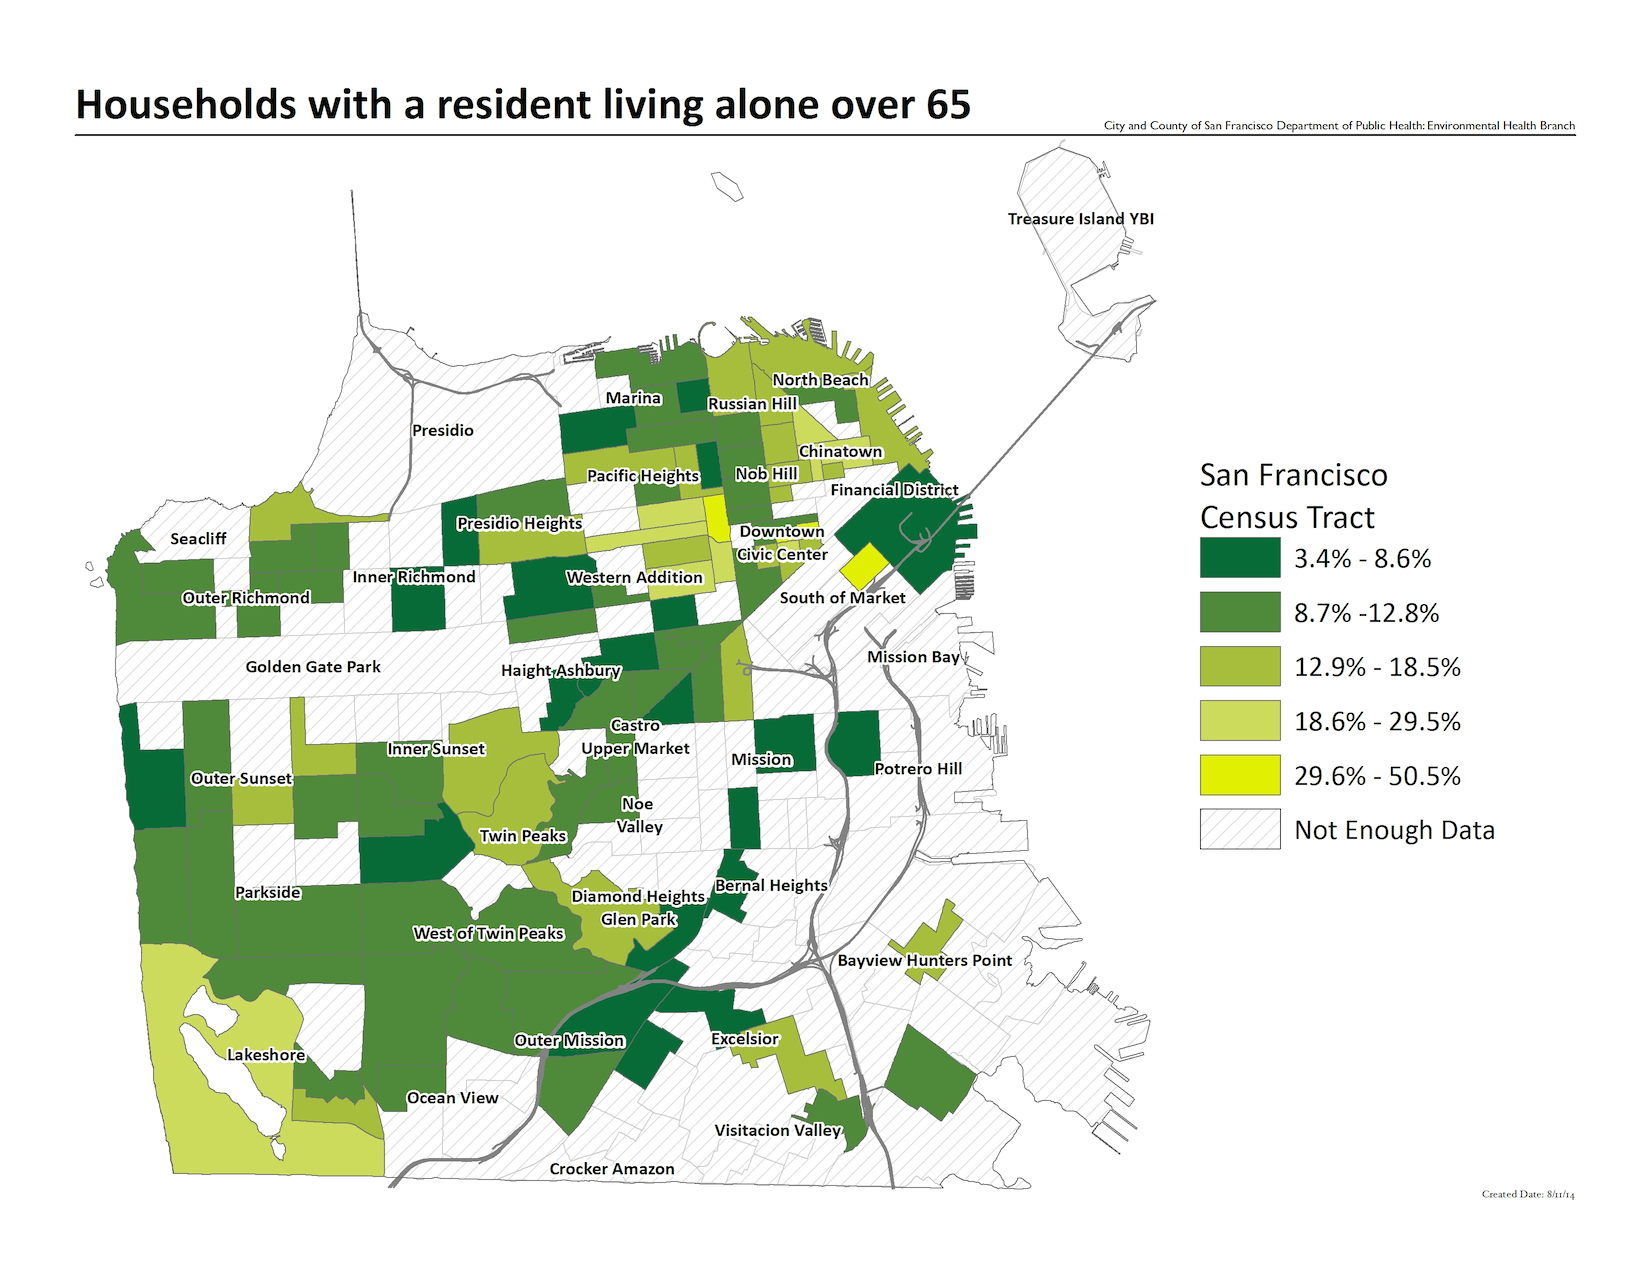 Map of the percent of households with a resident living alone who is over 65, by census tracts. The highest concentrations are in the Pacific Heights and Japantown areas.